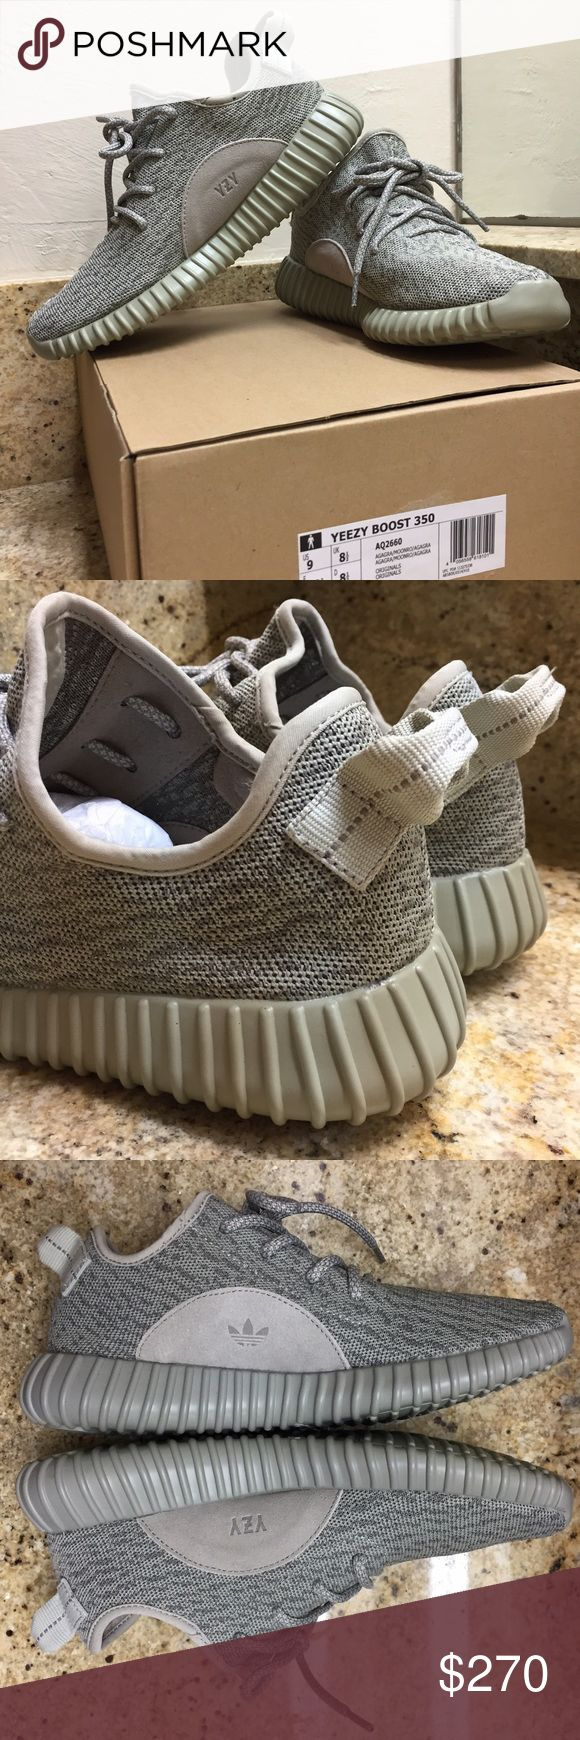 Adidas Yeezy Boost 350 Moonrock Size 9 Adidas Yeezy Boost 350 Moonrock Size 9  **If you don't want to pay $800-1200 for retails...these are a great option!**  Unbelievable comfort & high quality UA. Made in same factory, same materials. Comes in original box with tags.  Next day shipping! *Offers are welcome.Serious buyers only*  What you see is what you get.   True to size. Yeezy Shoes Athletic Shoes